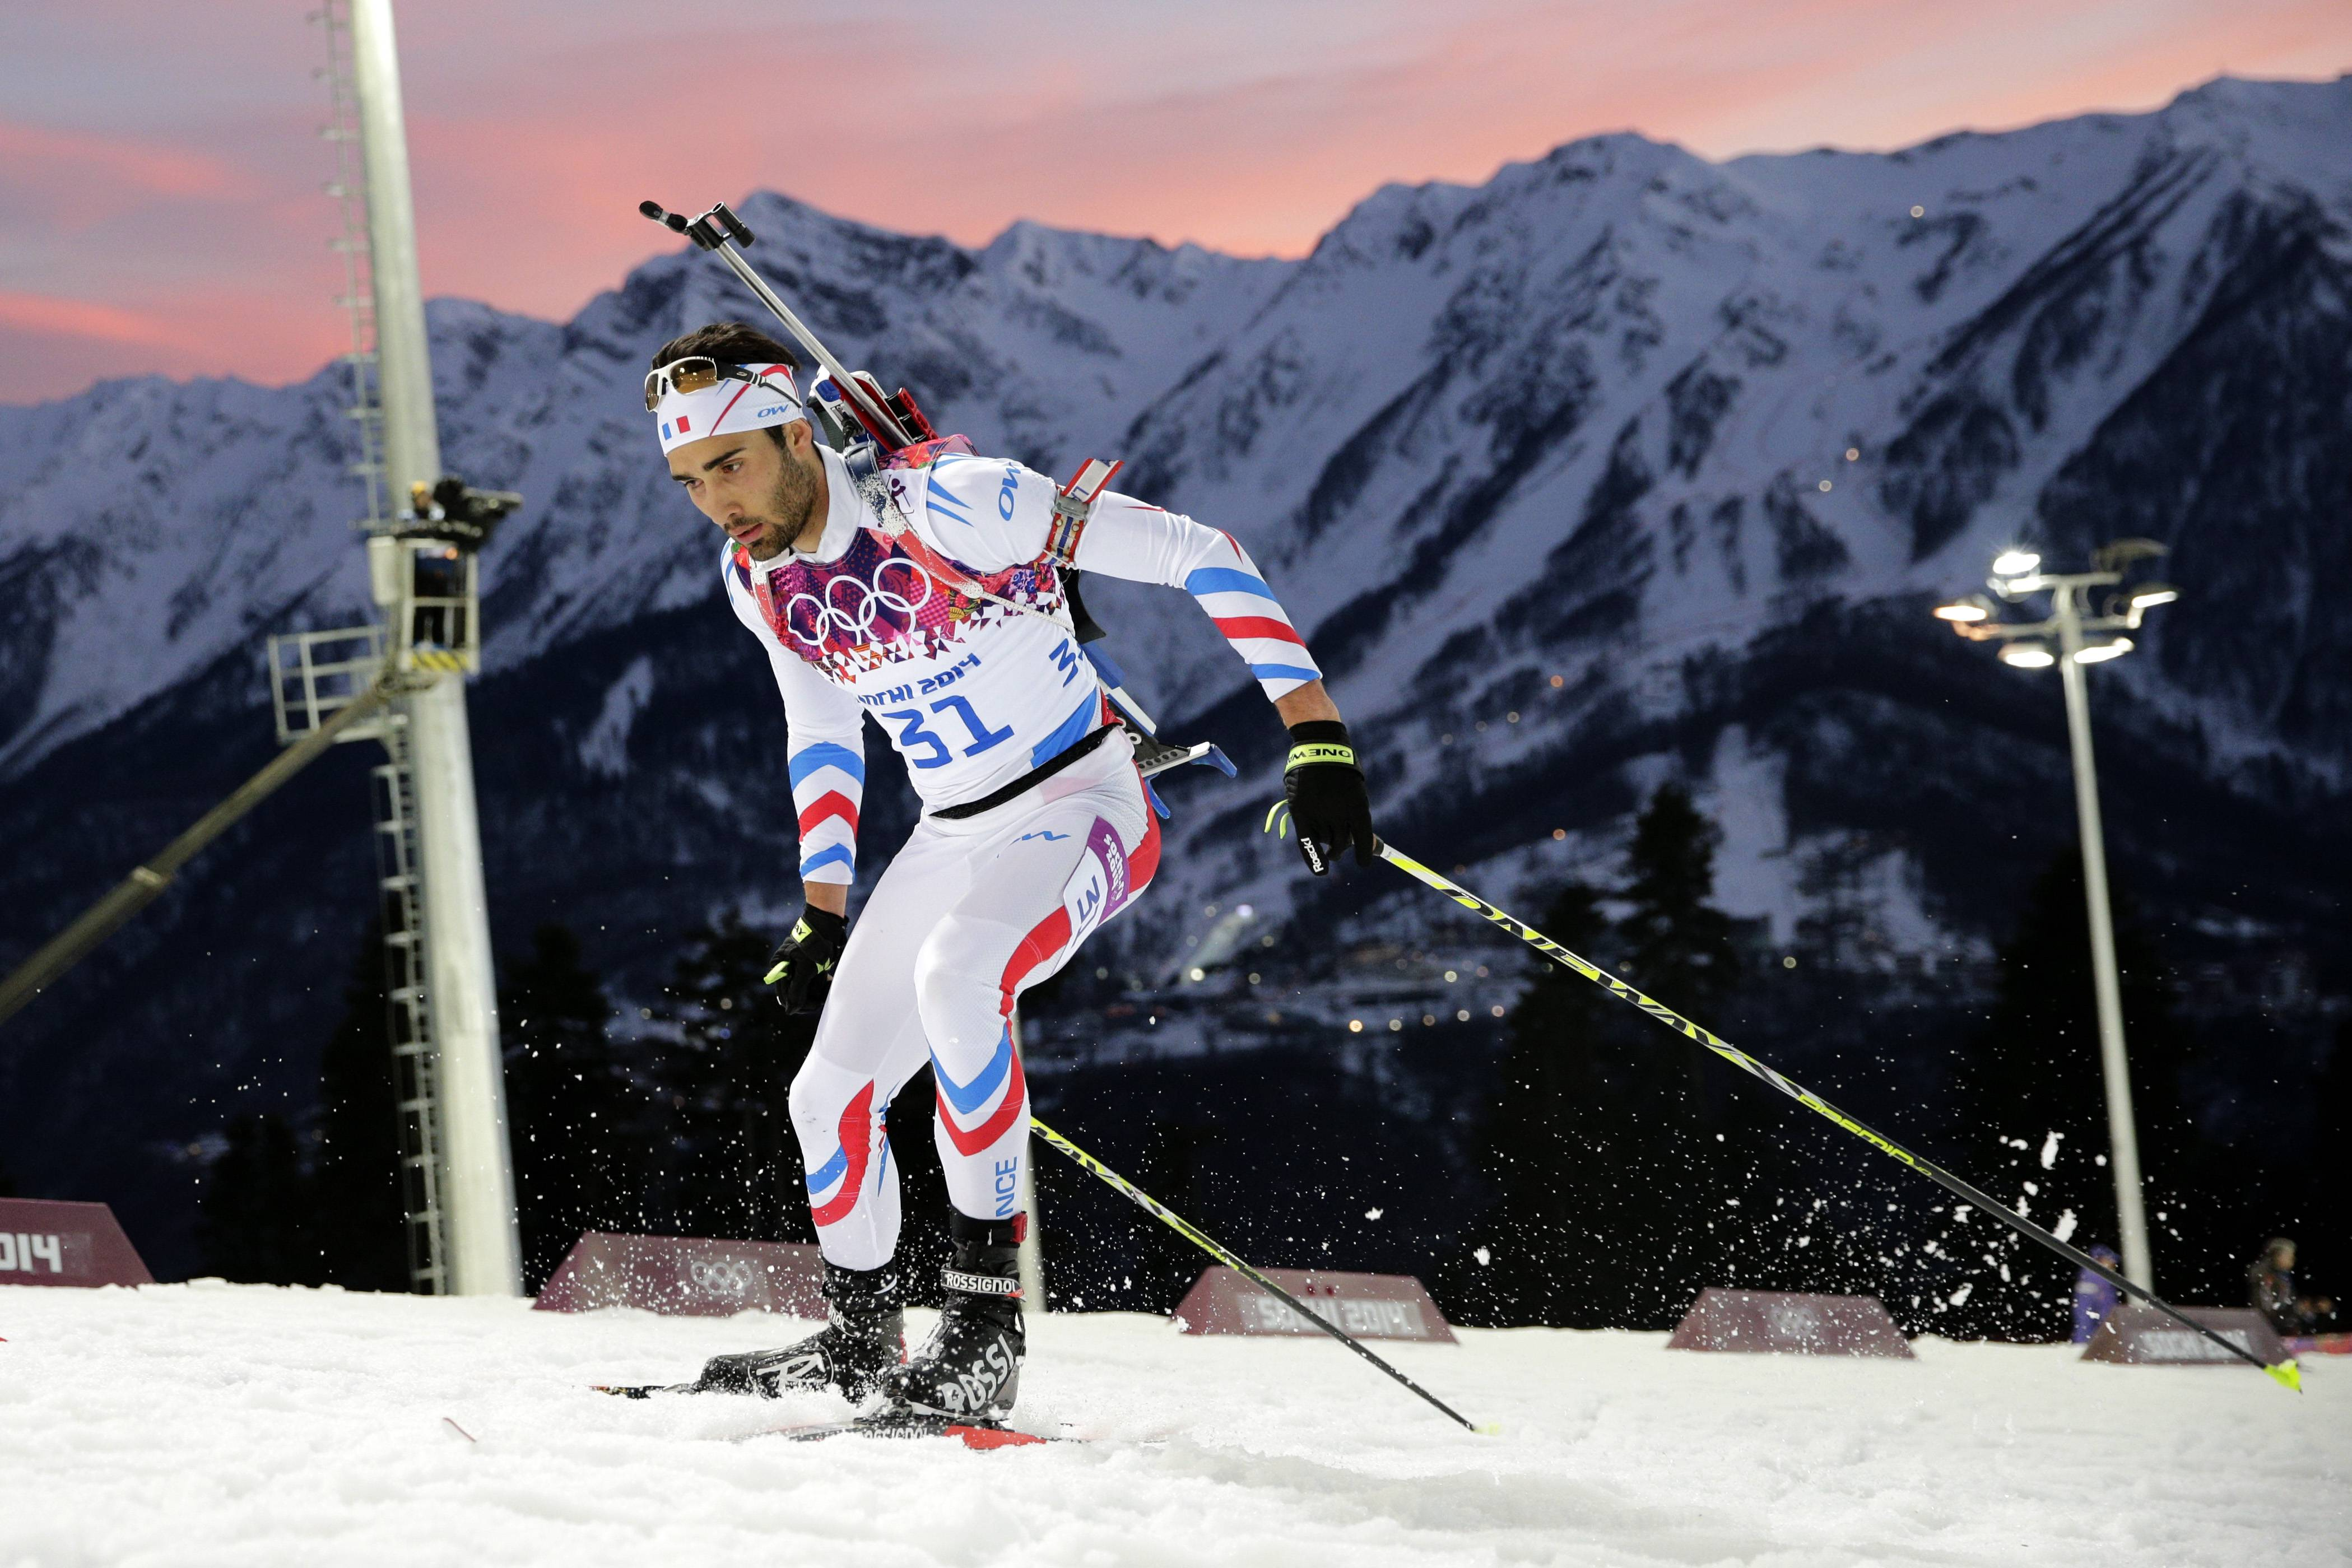 France's Martin Fourcade competes during the men's biathlon 20k individual race.